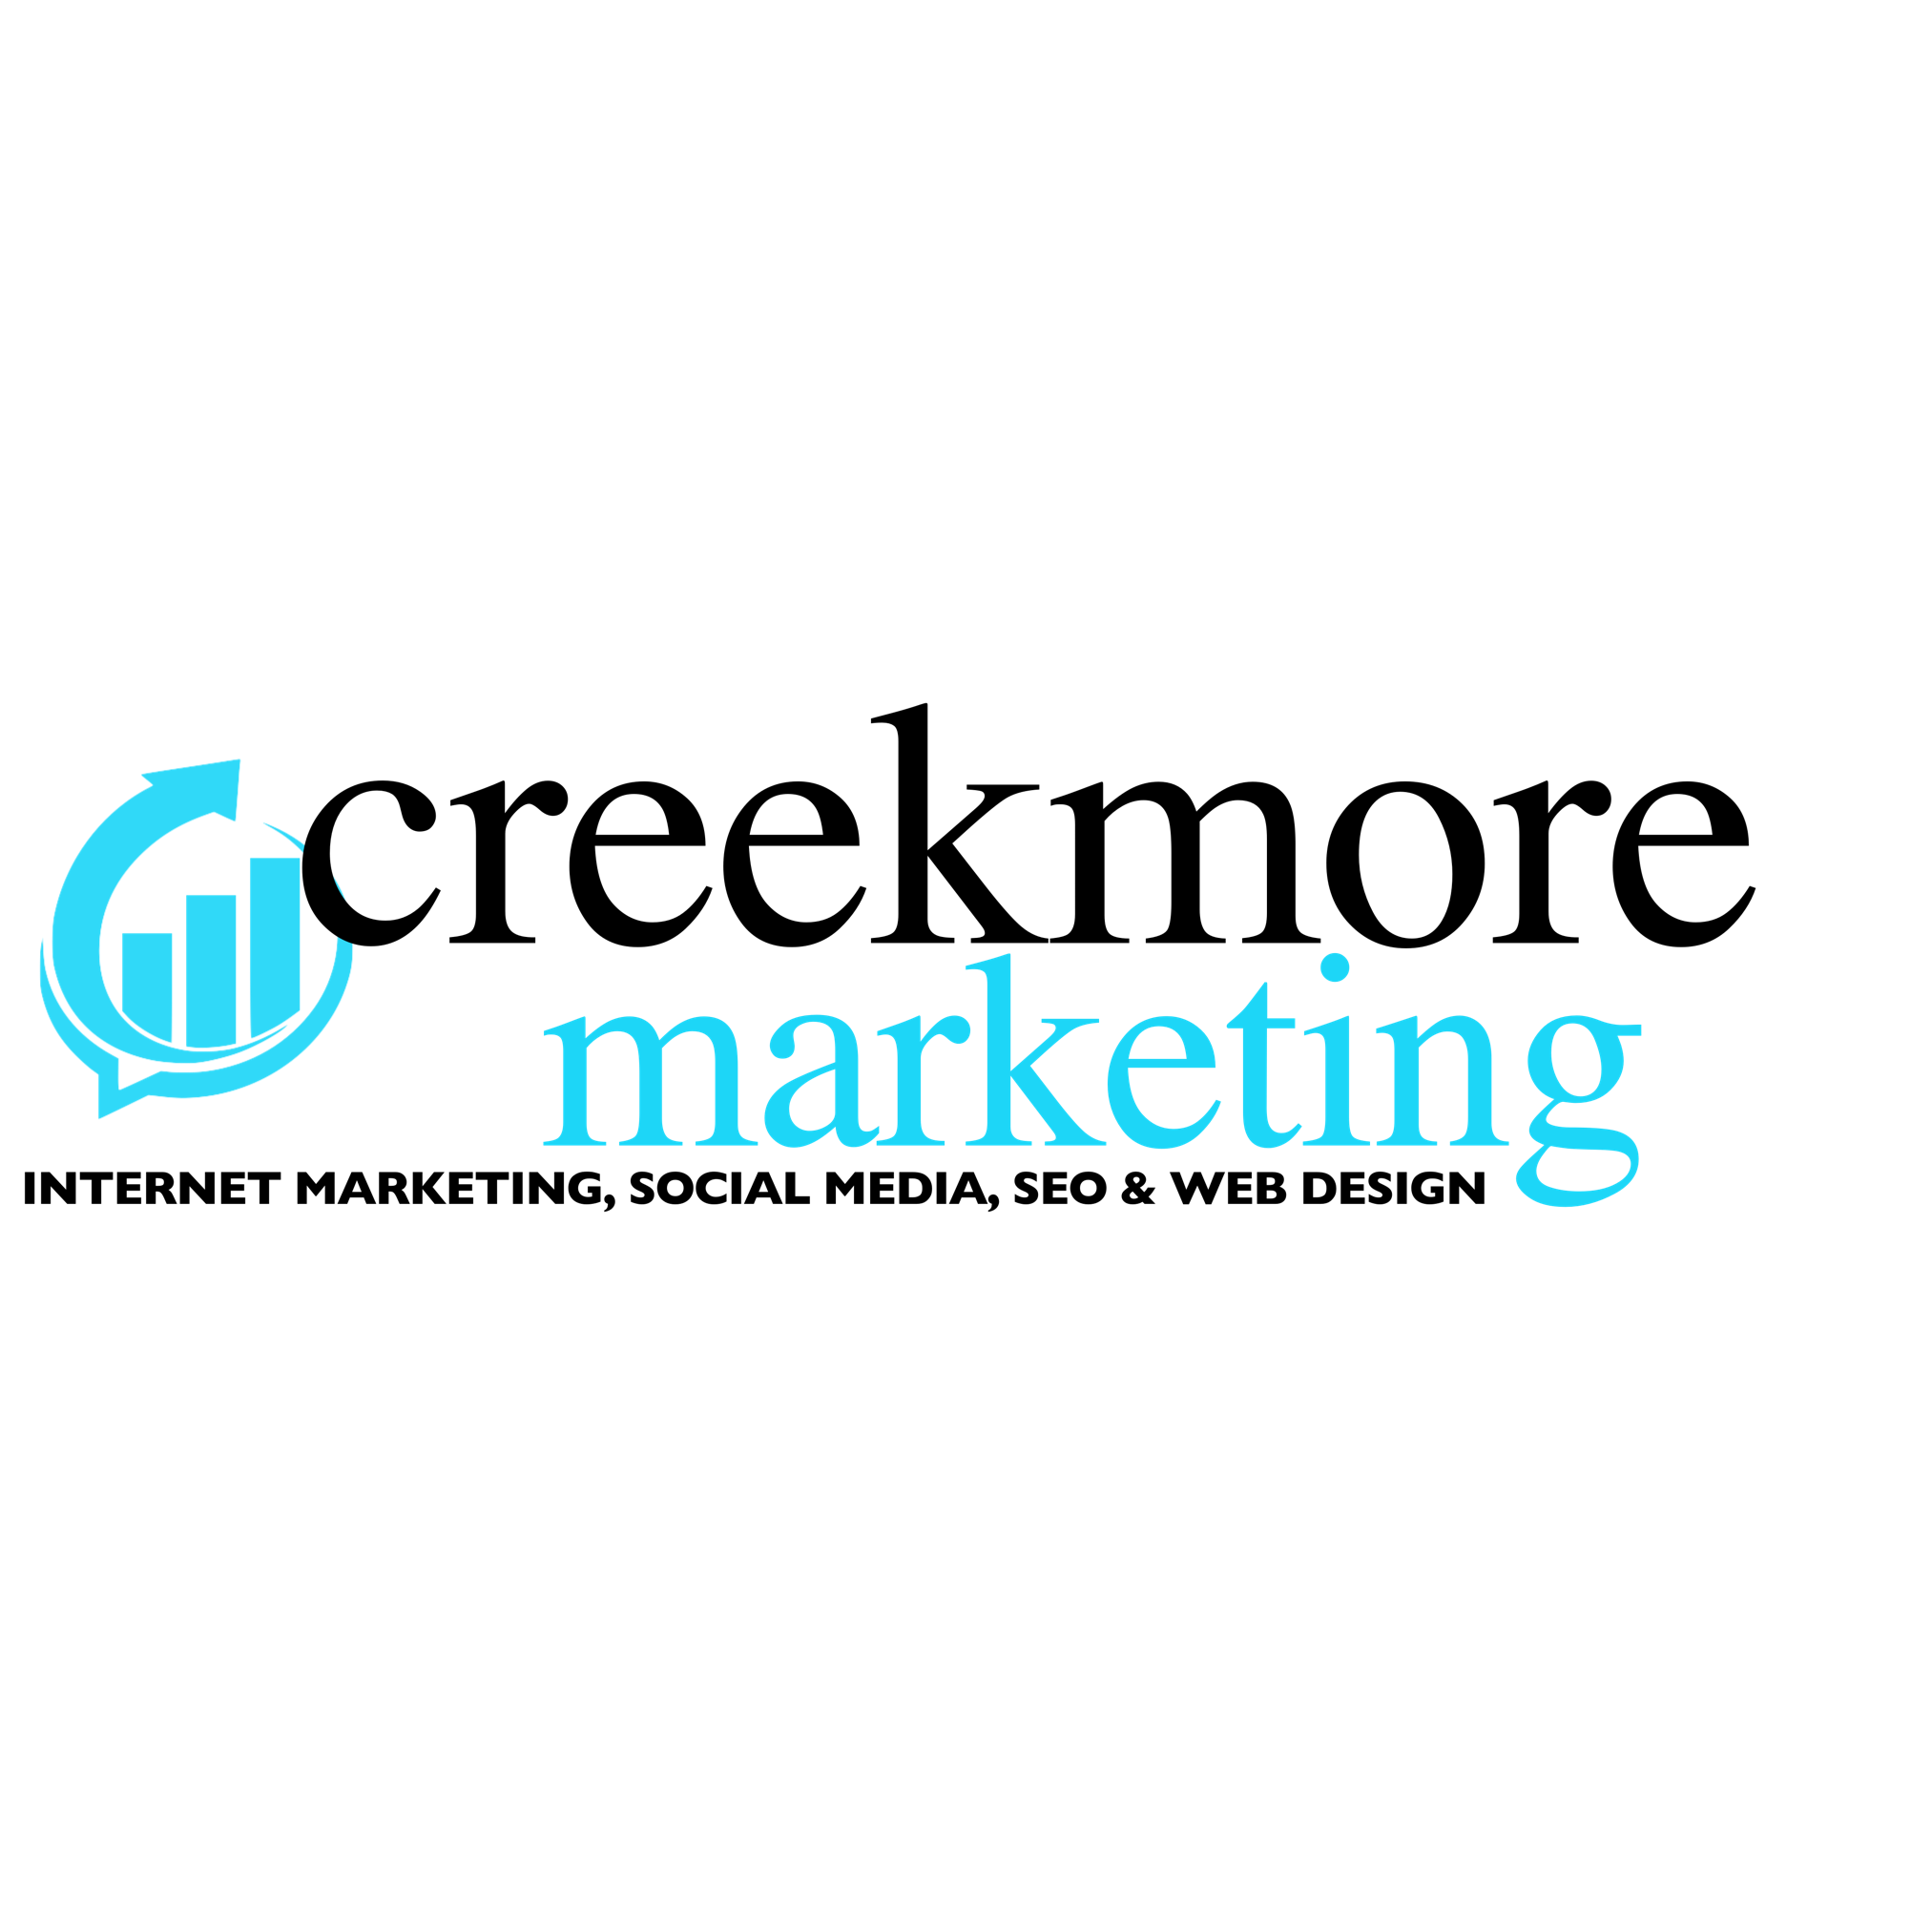 Creekmore Marketing & Web Design image 0